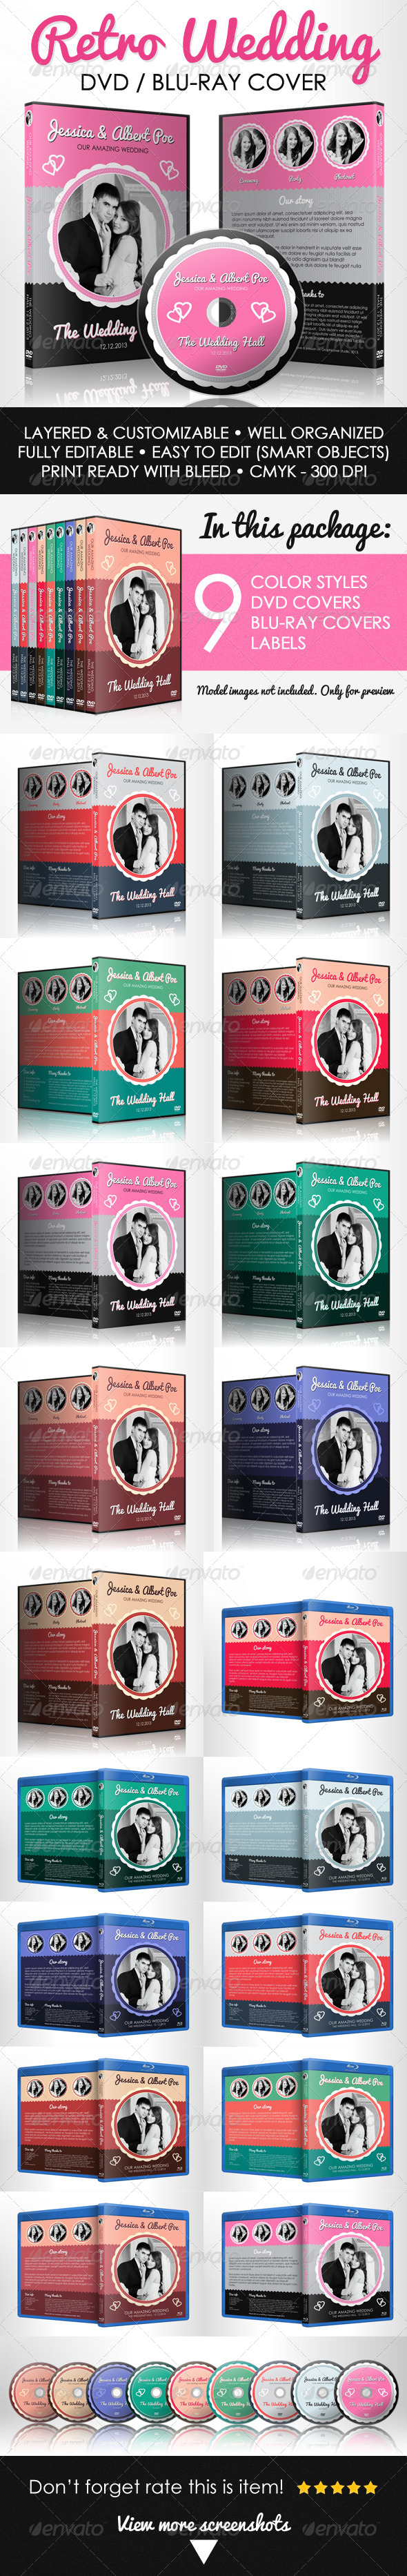 GraphicRiver Retro Wedding DVD & Blu-ray Cover With Disc Label 5080156